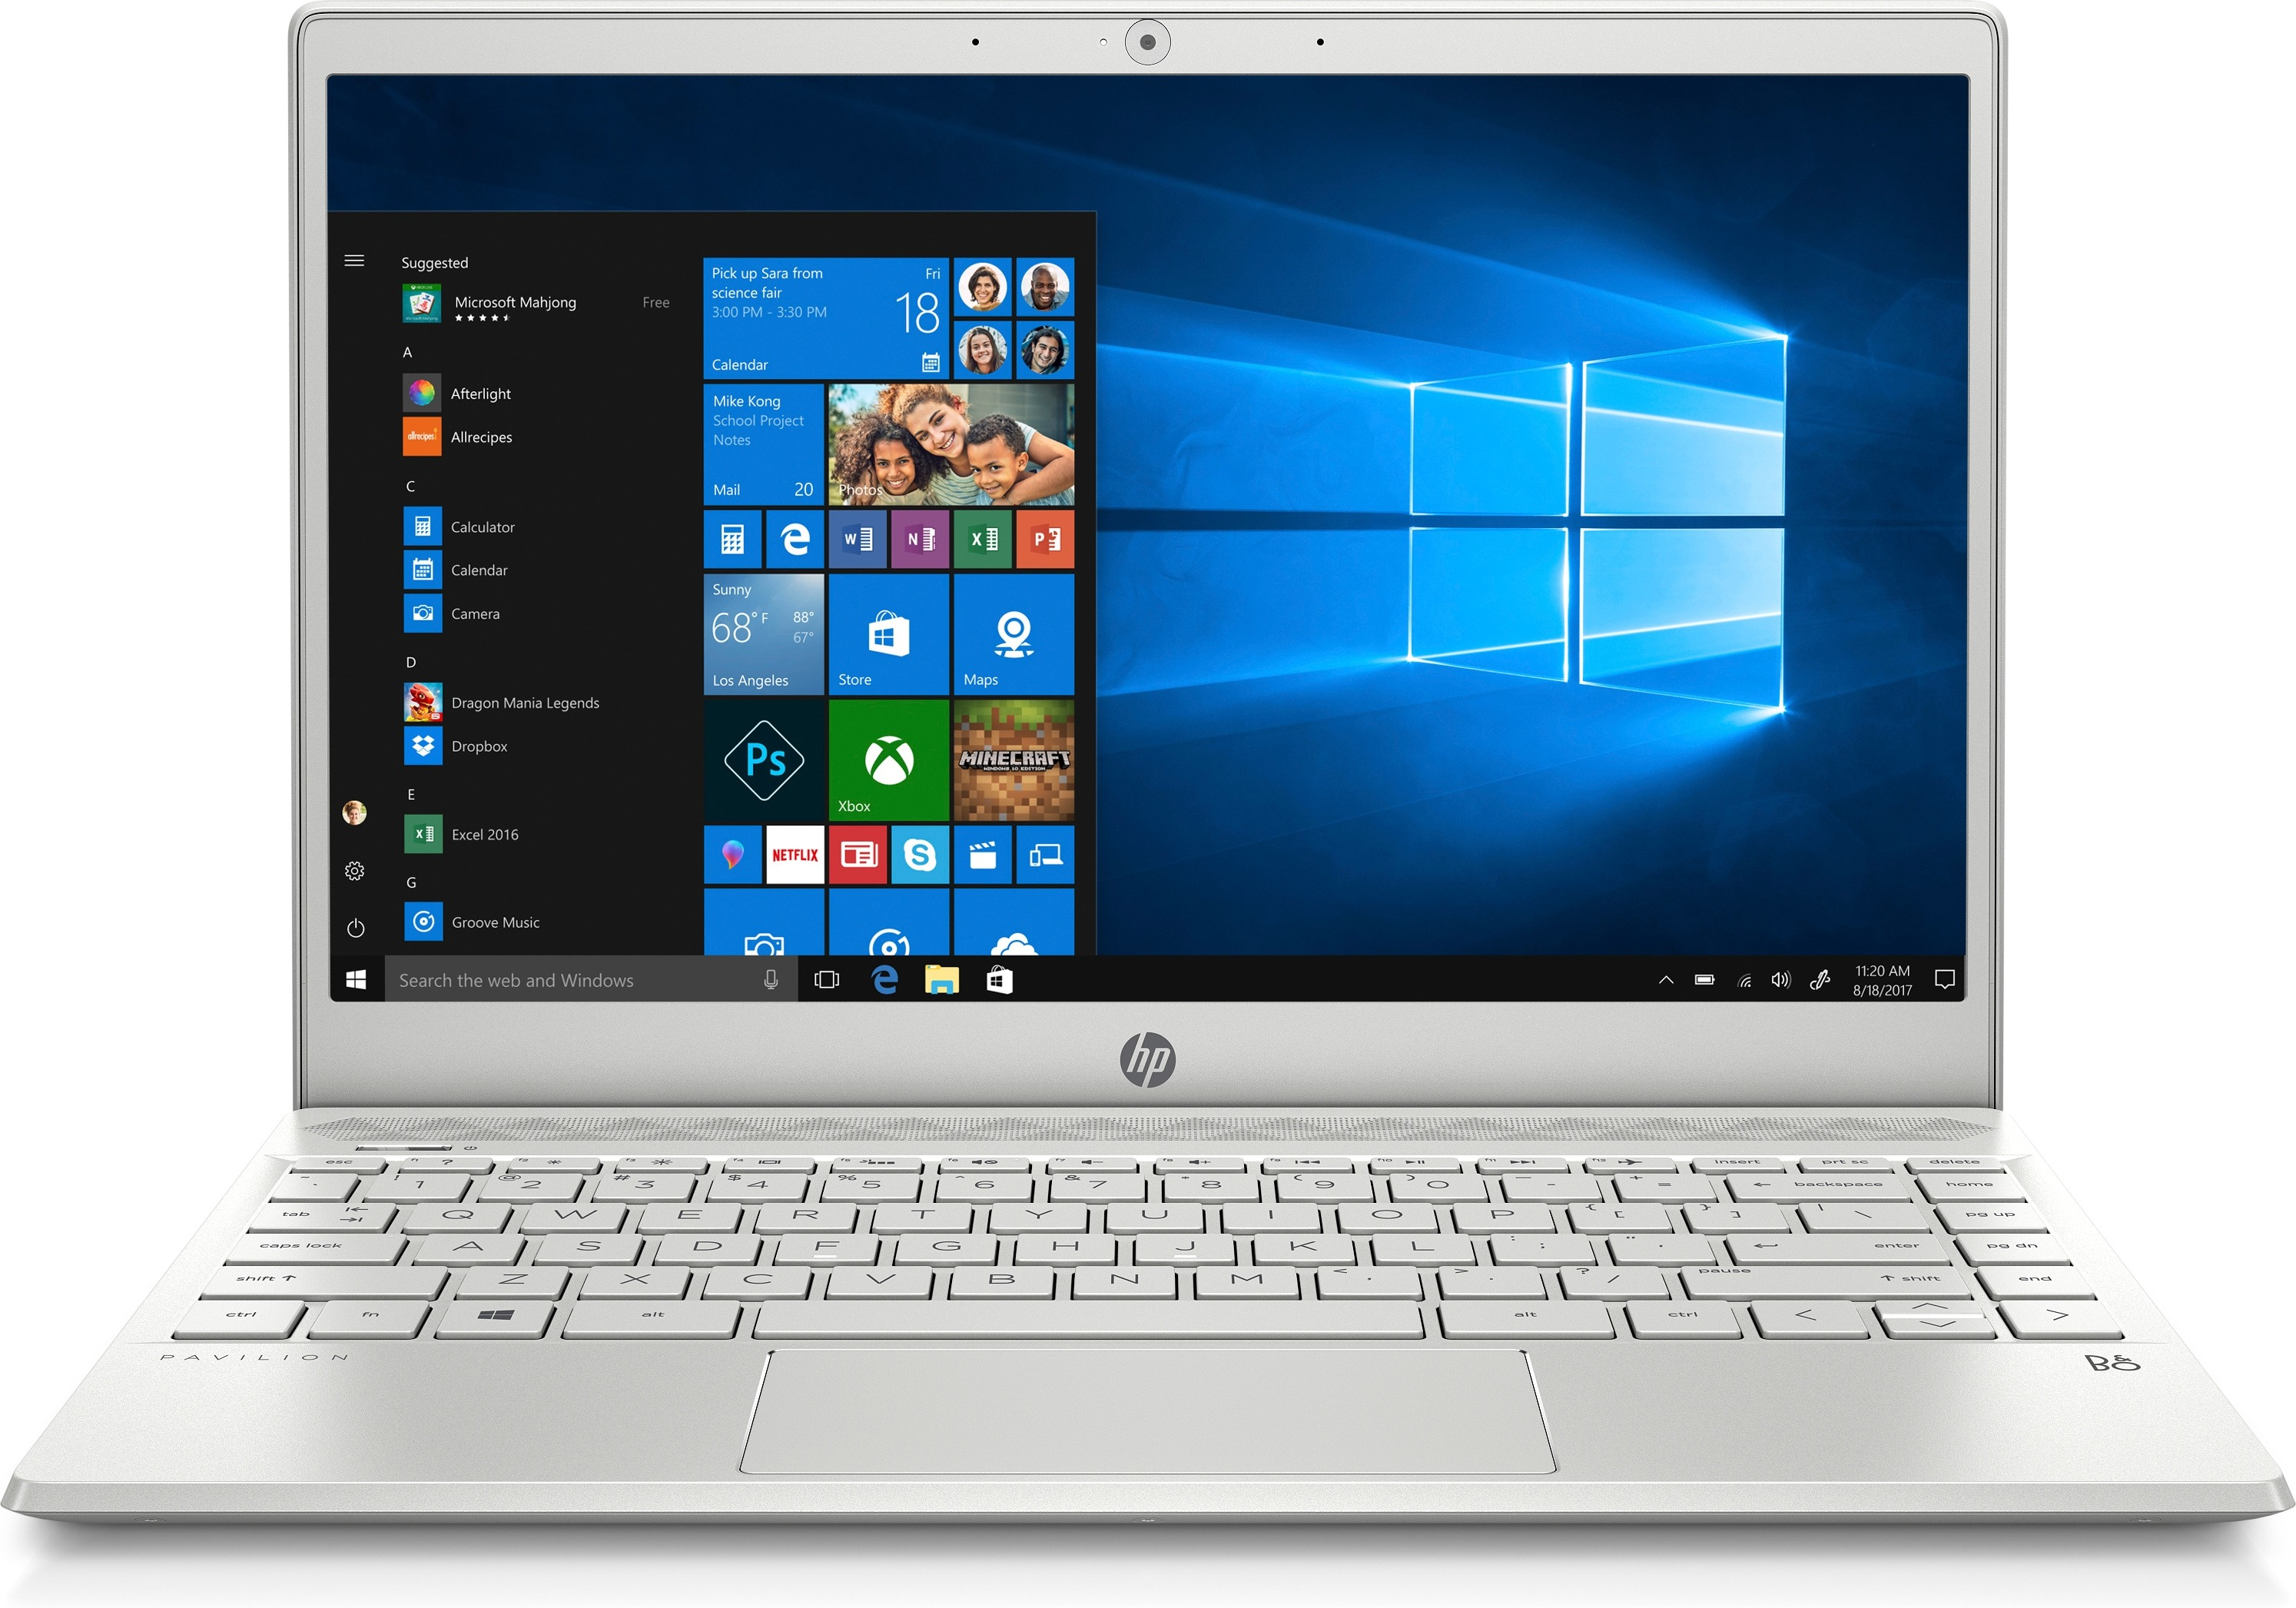 HP laptop Pavilion 13-an1380nd - 8 GB RAM, 256 GB SSD, 13.3 inch